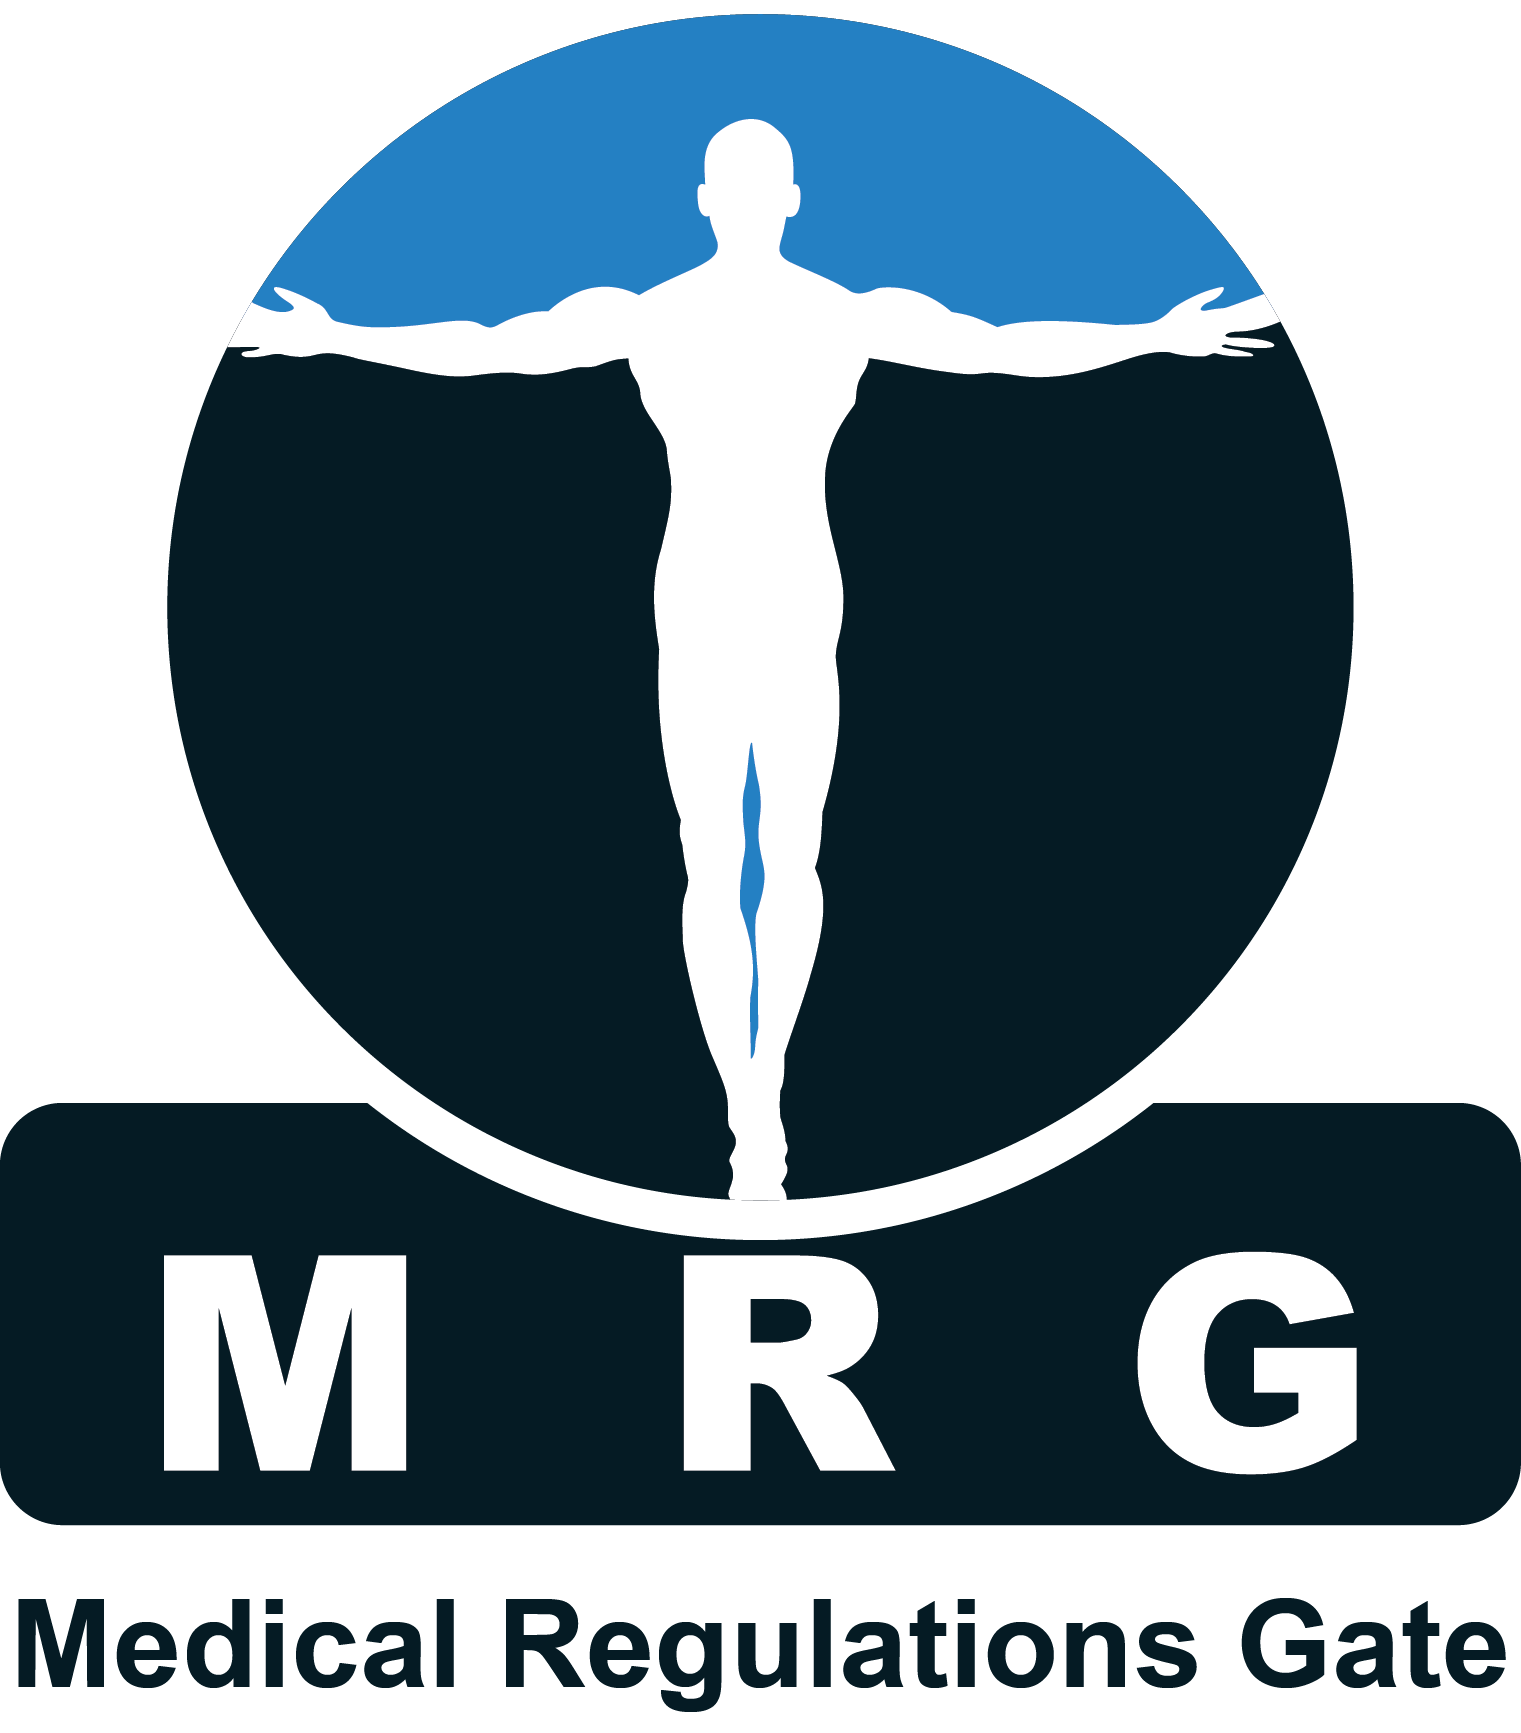 Medical Regulation Gate